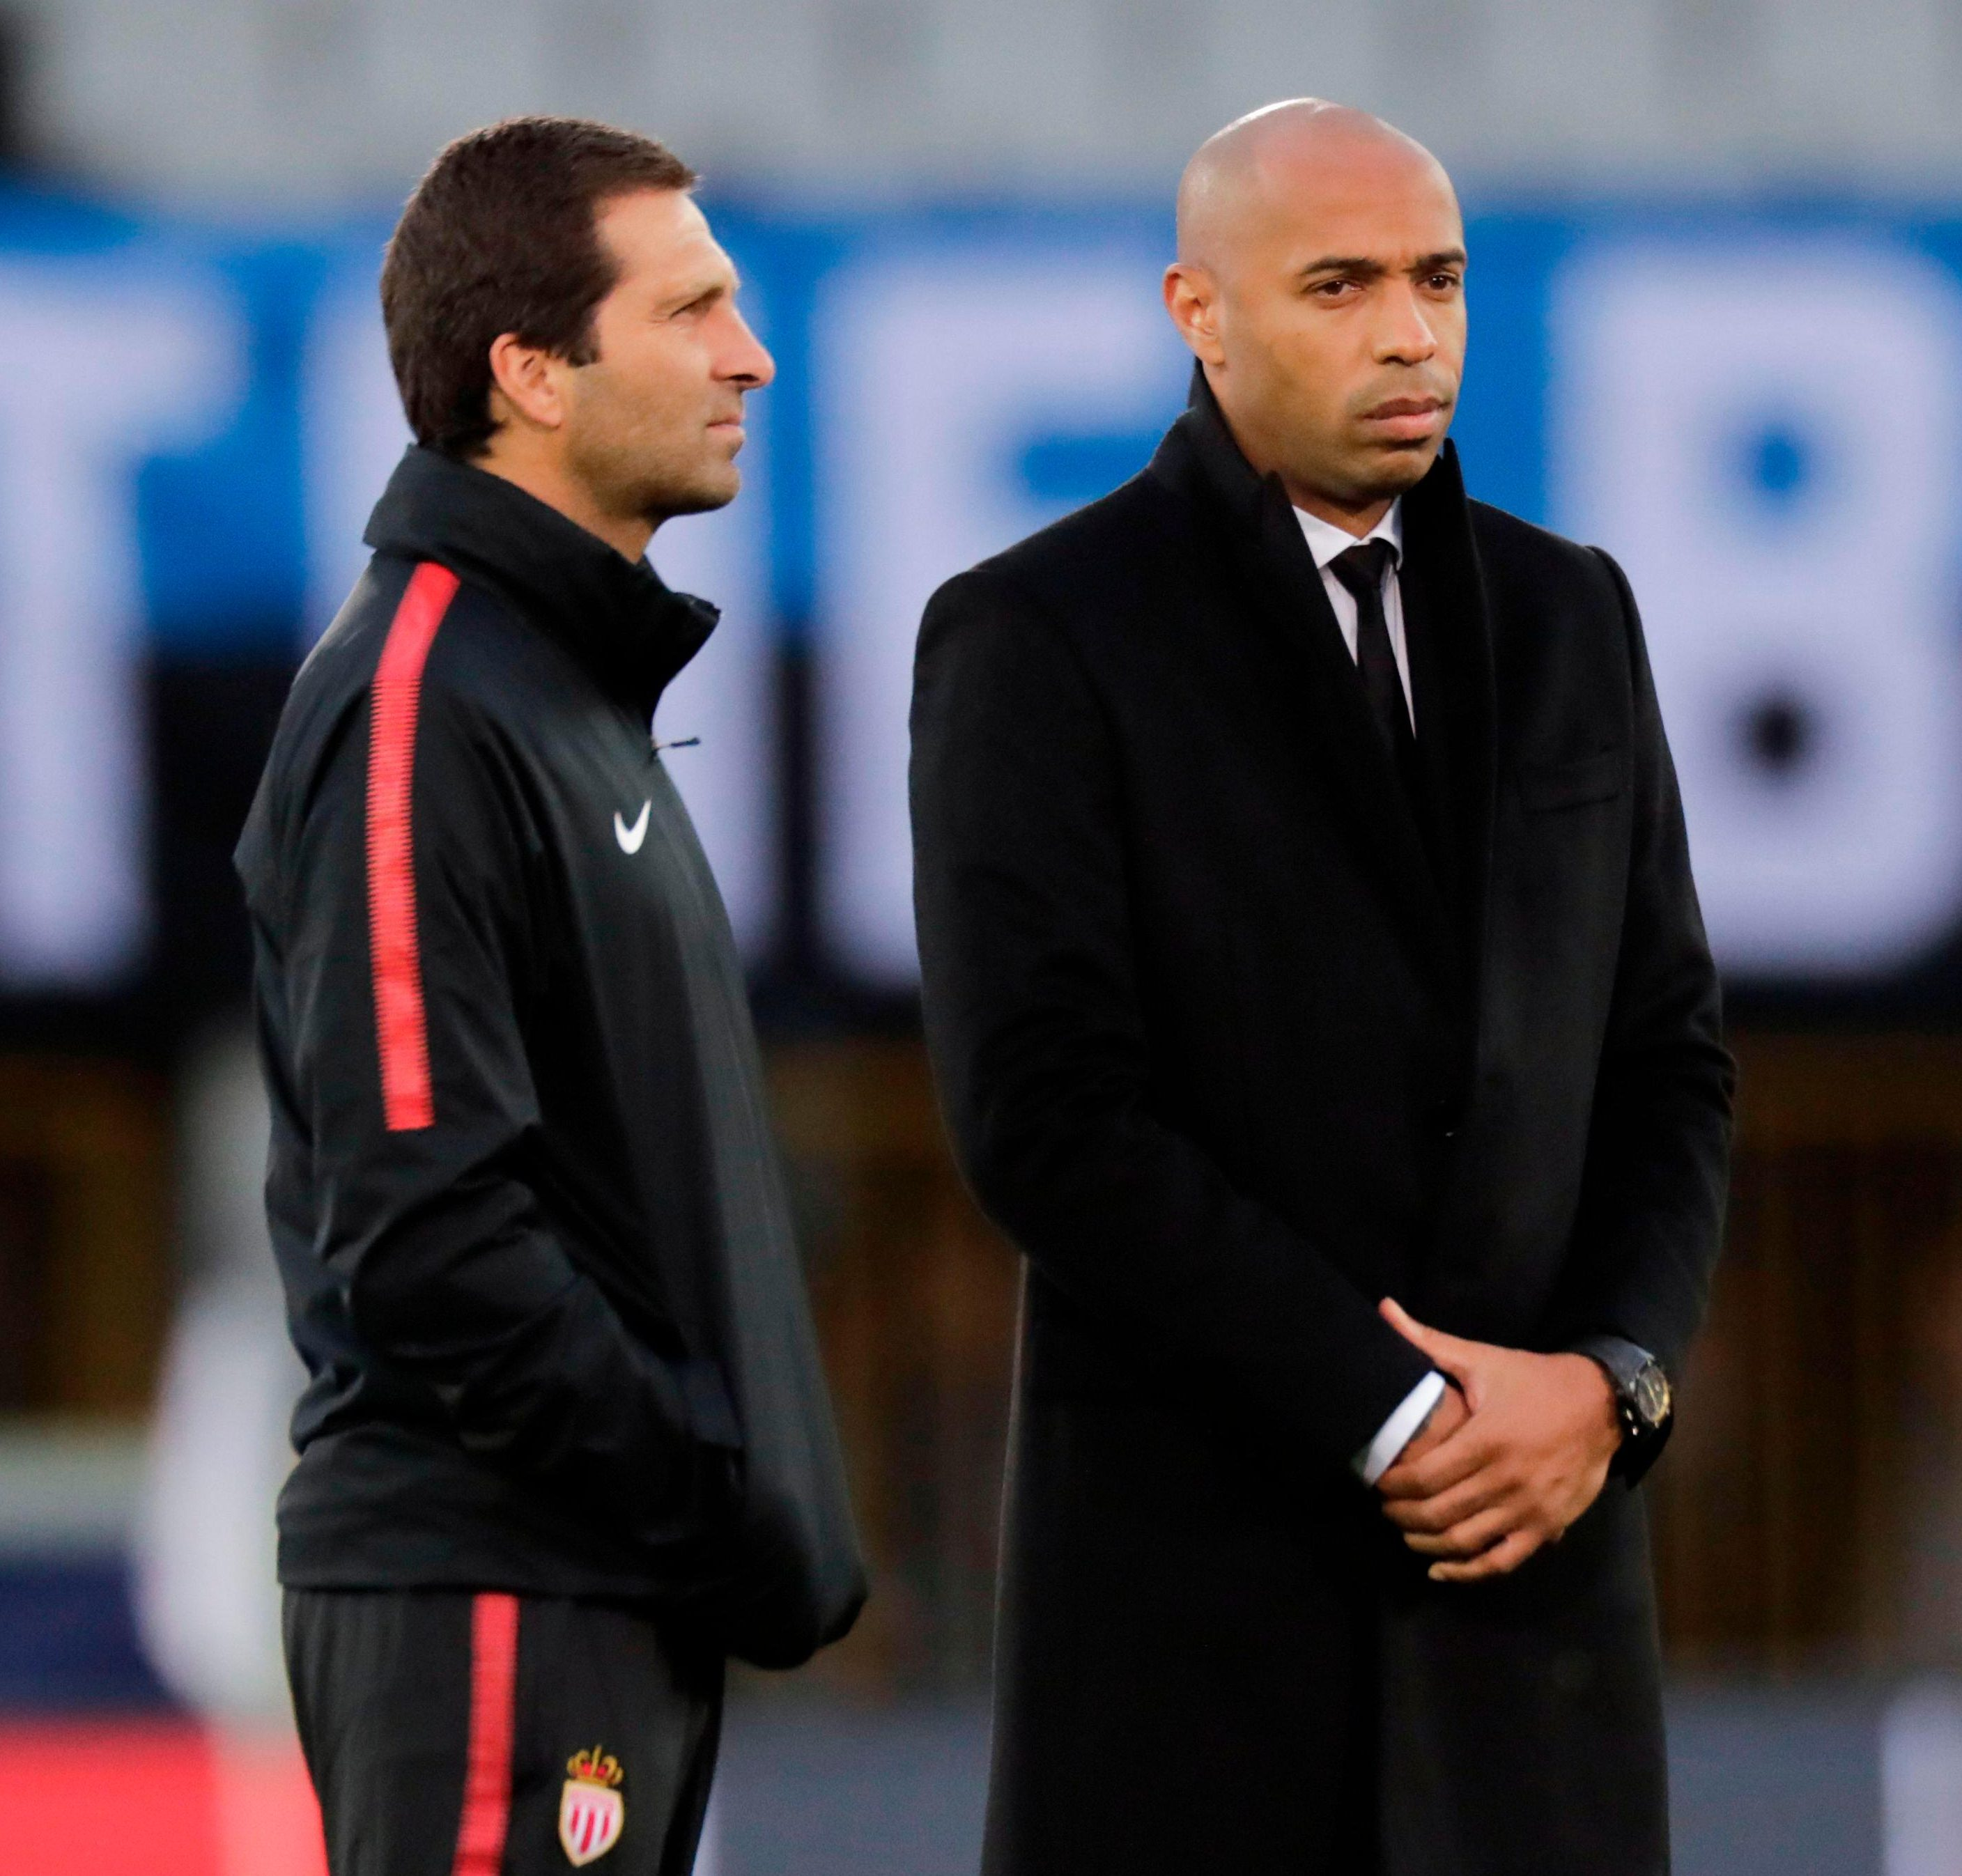 Plymouth is a far cry from the elite world, where for example Arsenal legend Thierry Henry has just taken over as Monaco boss